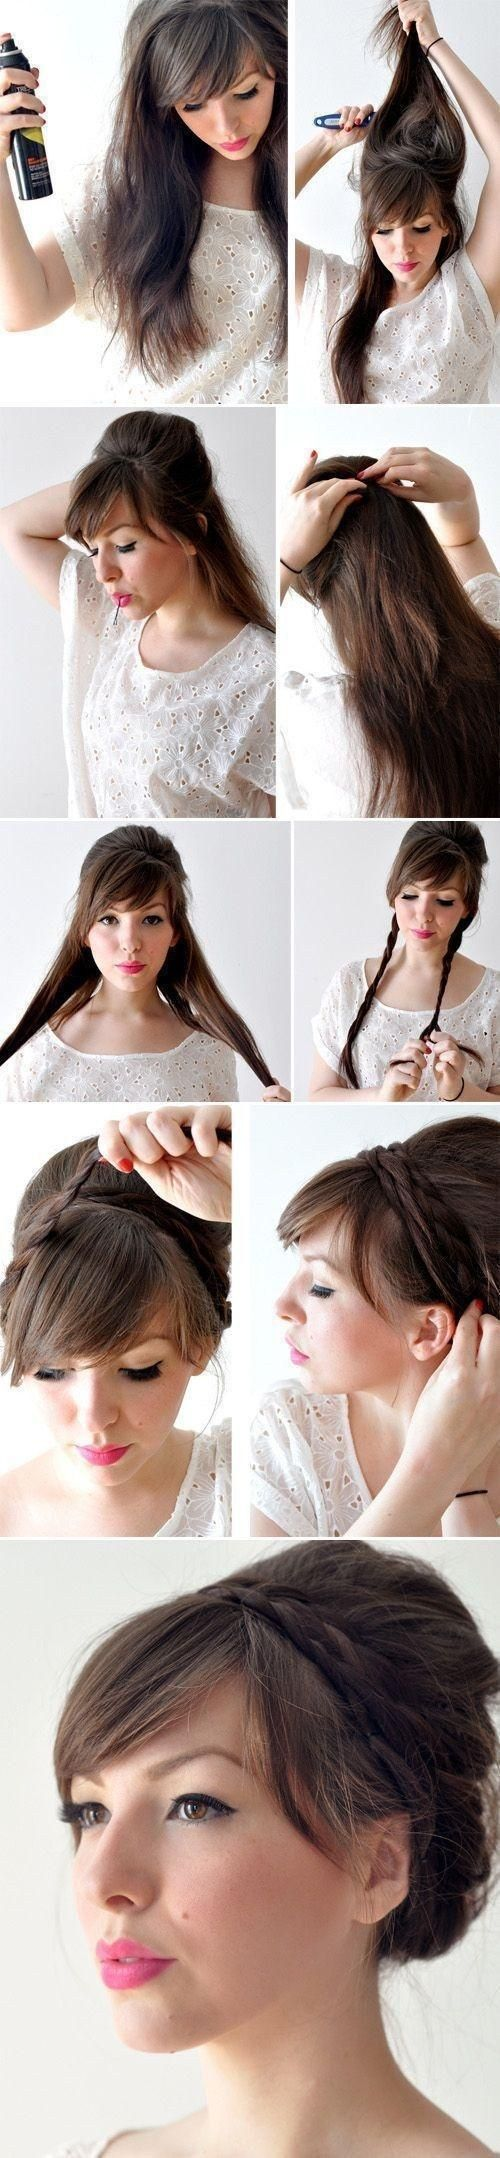 20 Best Hair Tutorials You'll Ever Read - Page 39 of 94 - HairSilver